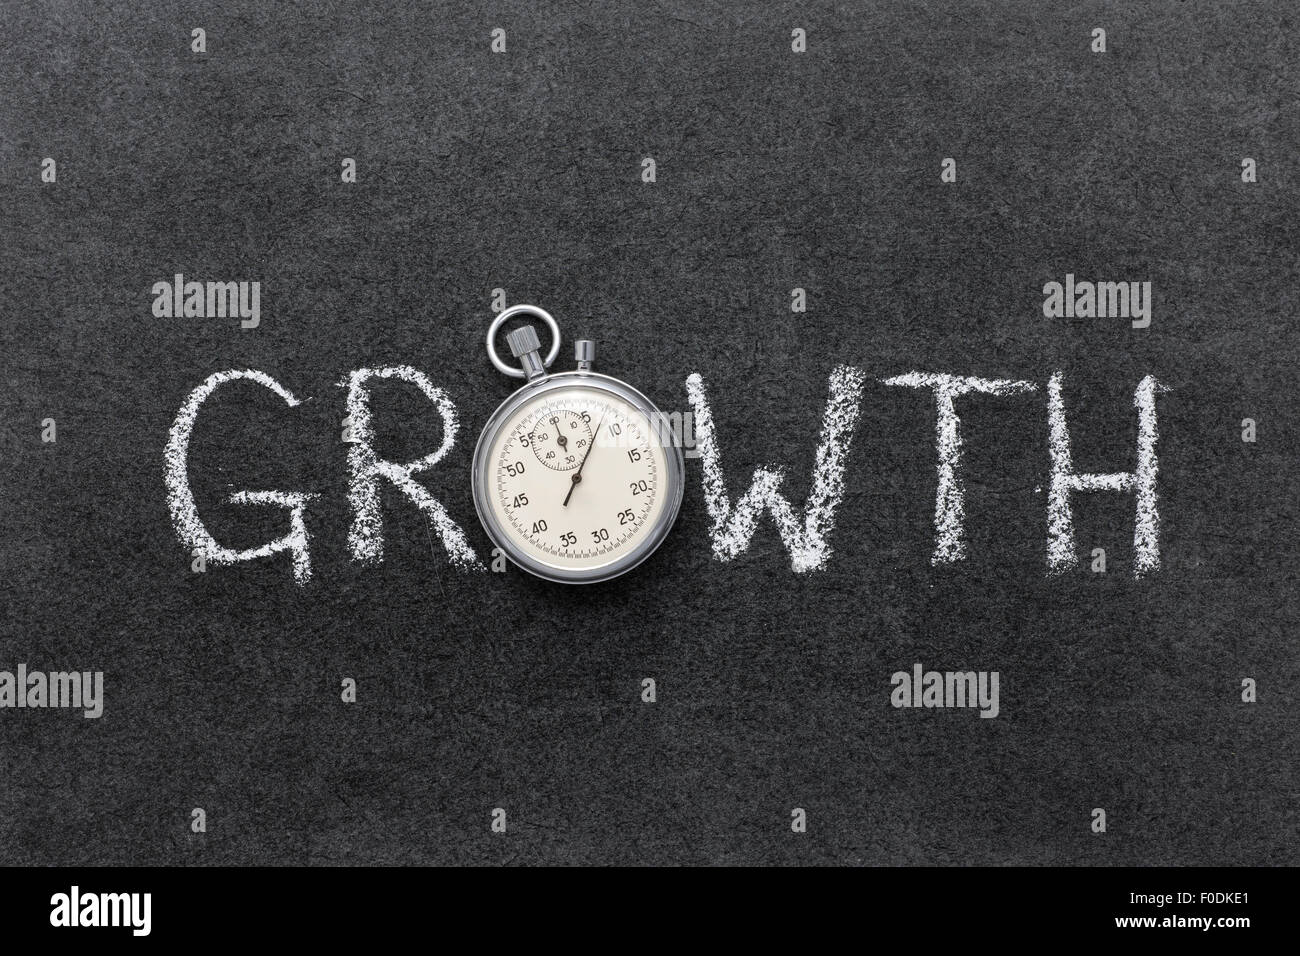 growth concept handwritten on chalkboard with vintage precise stopwatch used instead of O - Stock Image